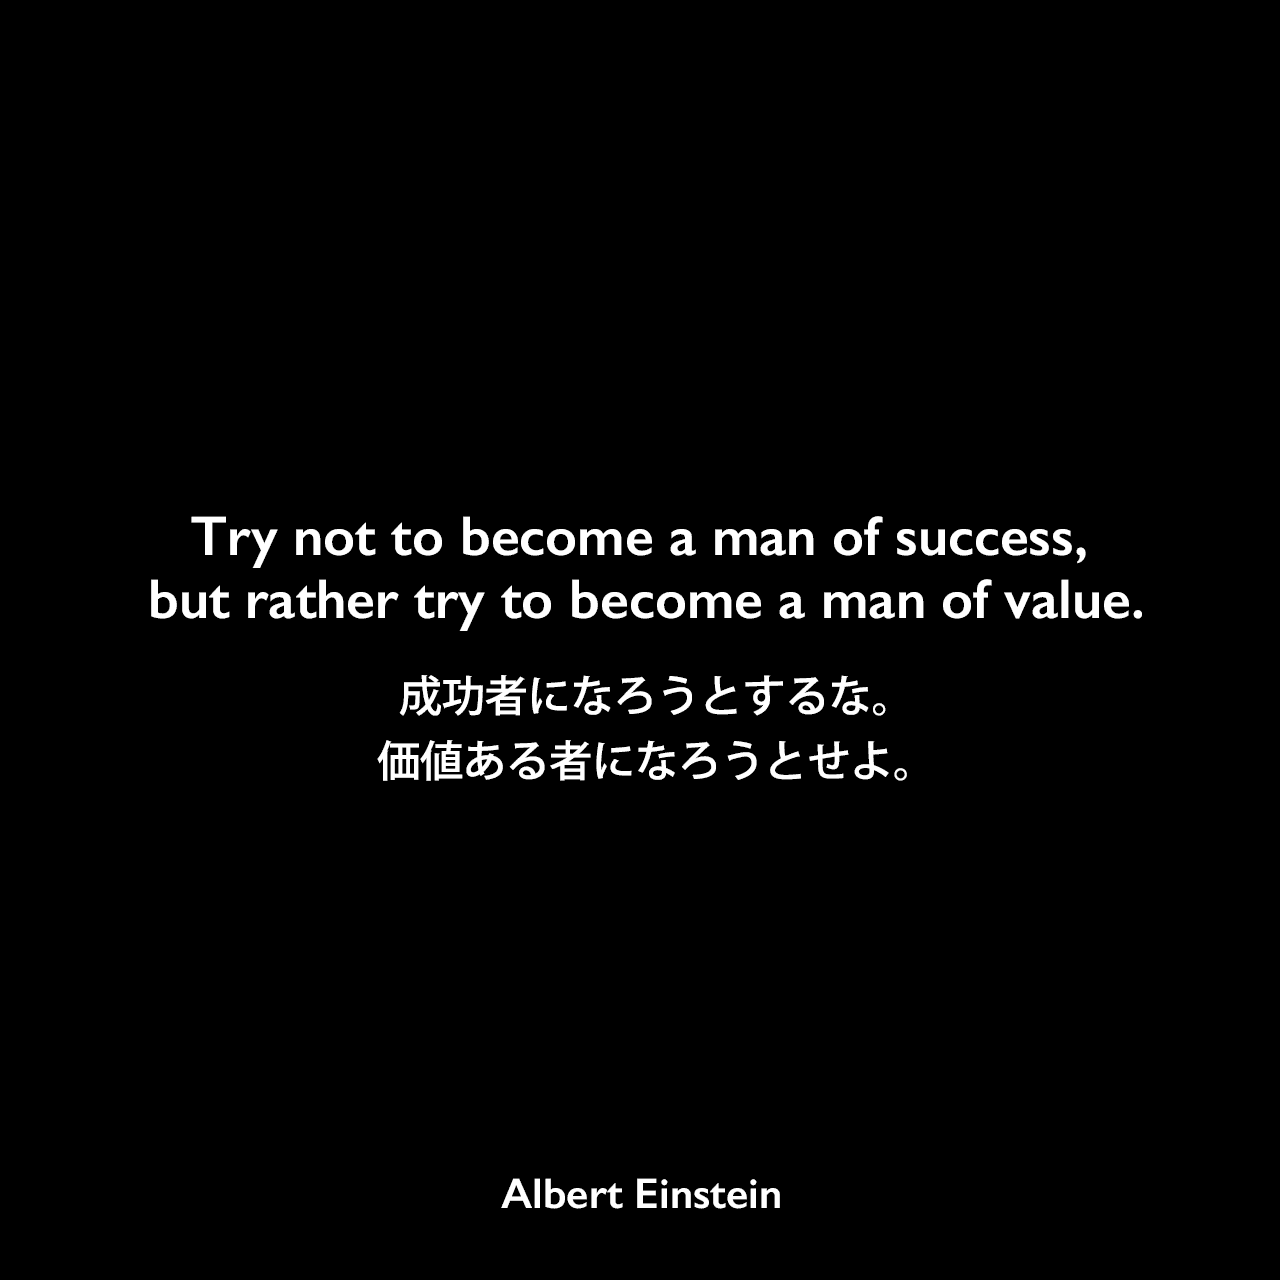 Try not to become a man of success, but rather try to become a man of value.成功者になろうとするな。価値ある者になろうとせよ。